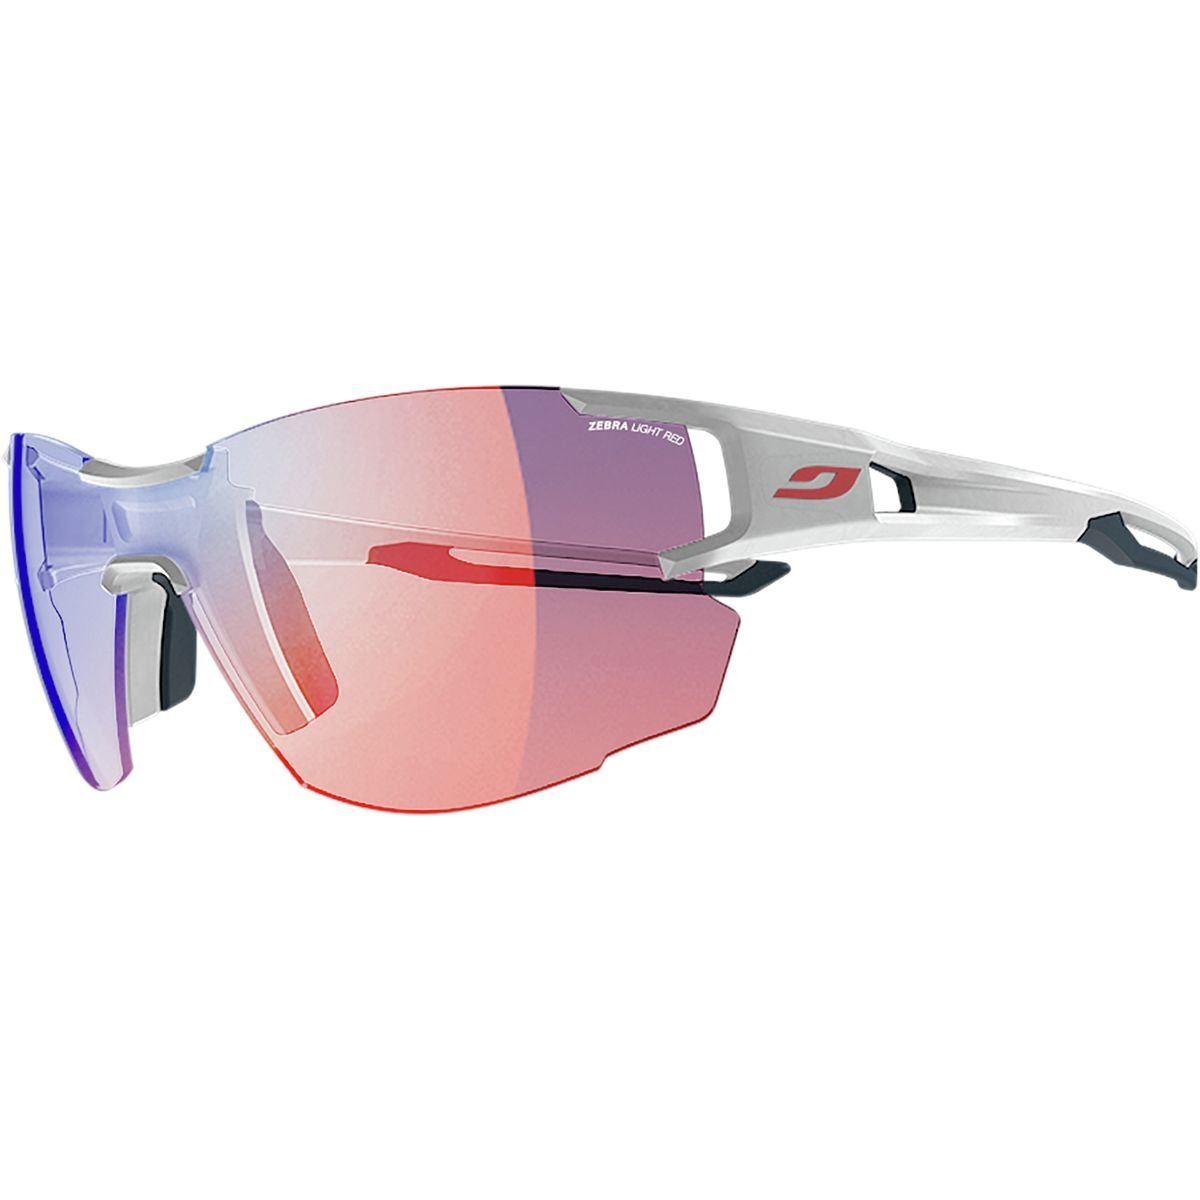 Julbo Aerolite Sunglasses review